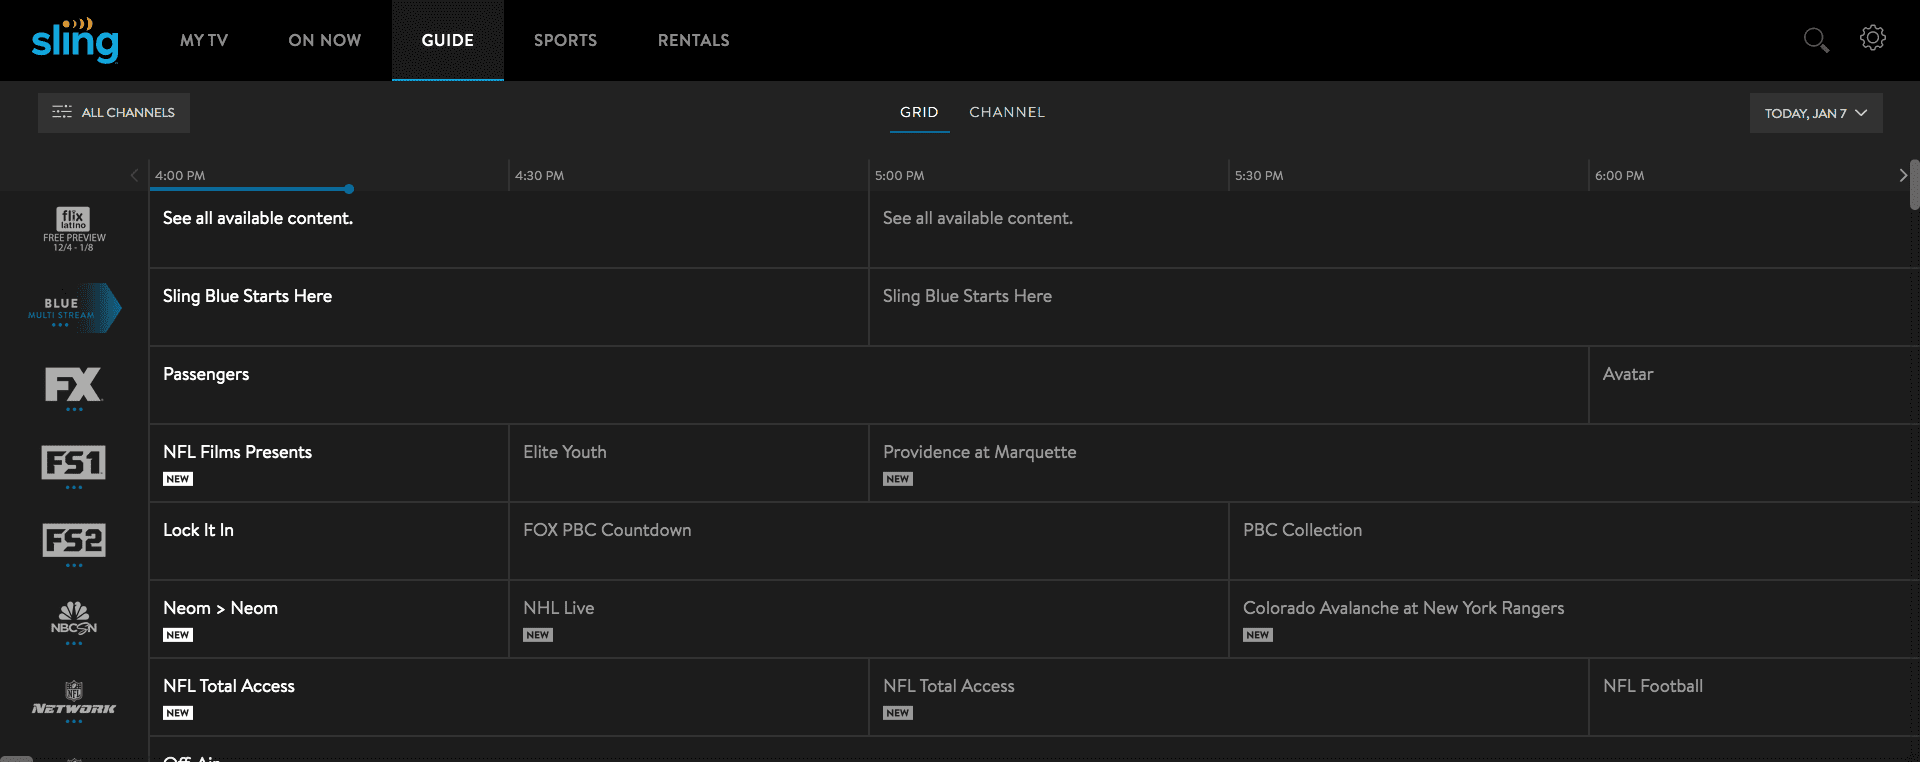 Sling TV channel guide   Cabletv.com